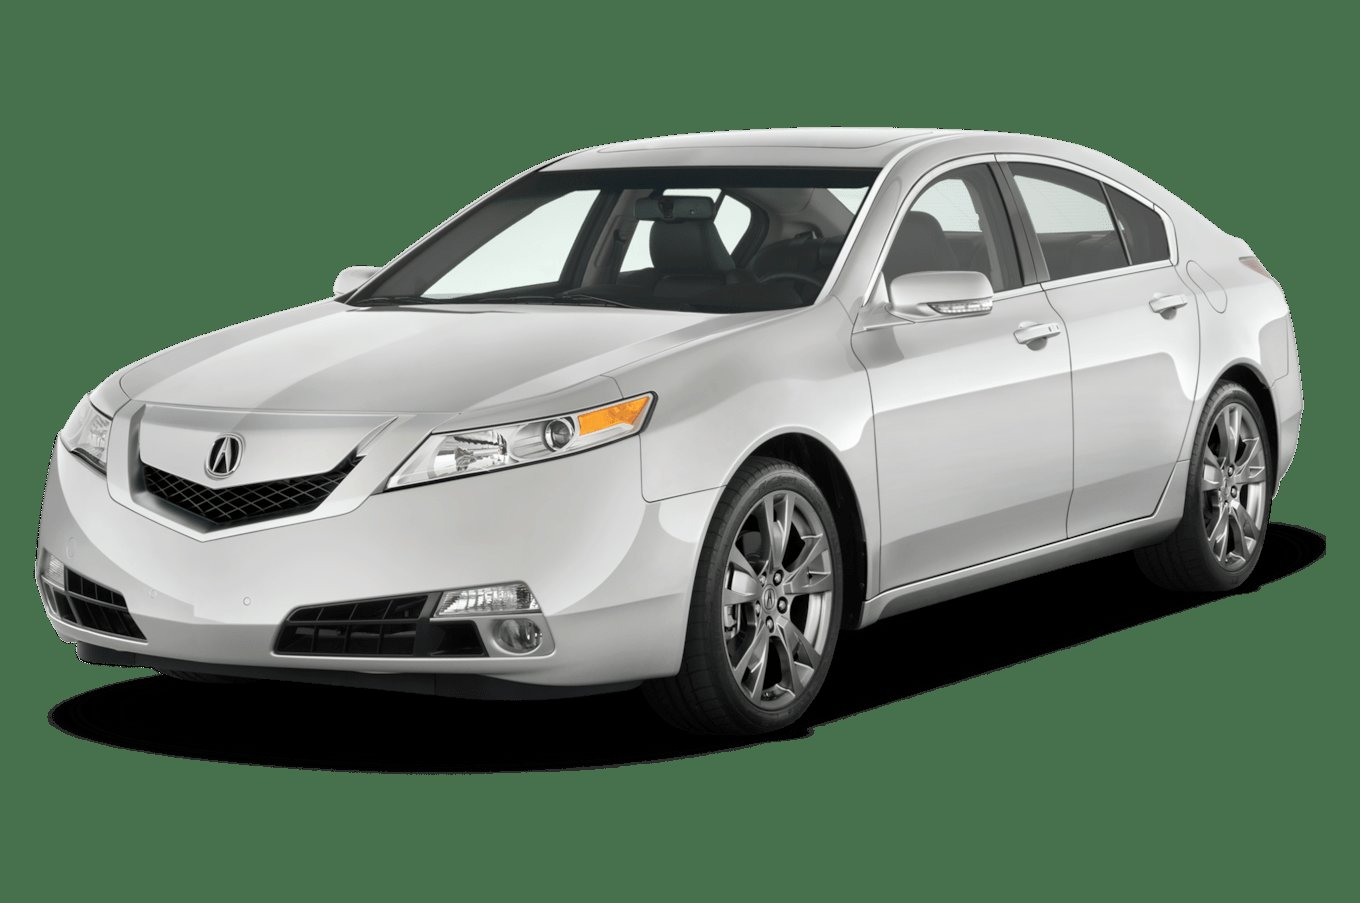 Latest 2010 Acura Tl Reviews Research Tl Prices Specs Free Download